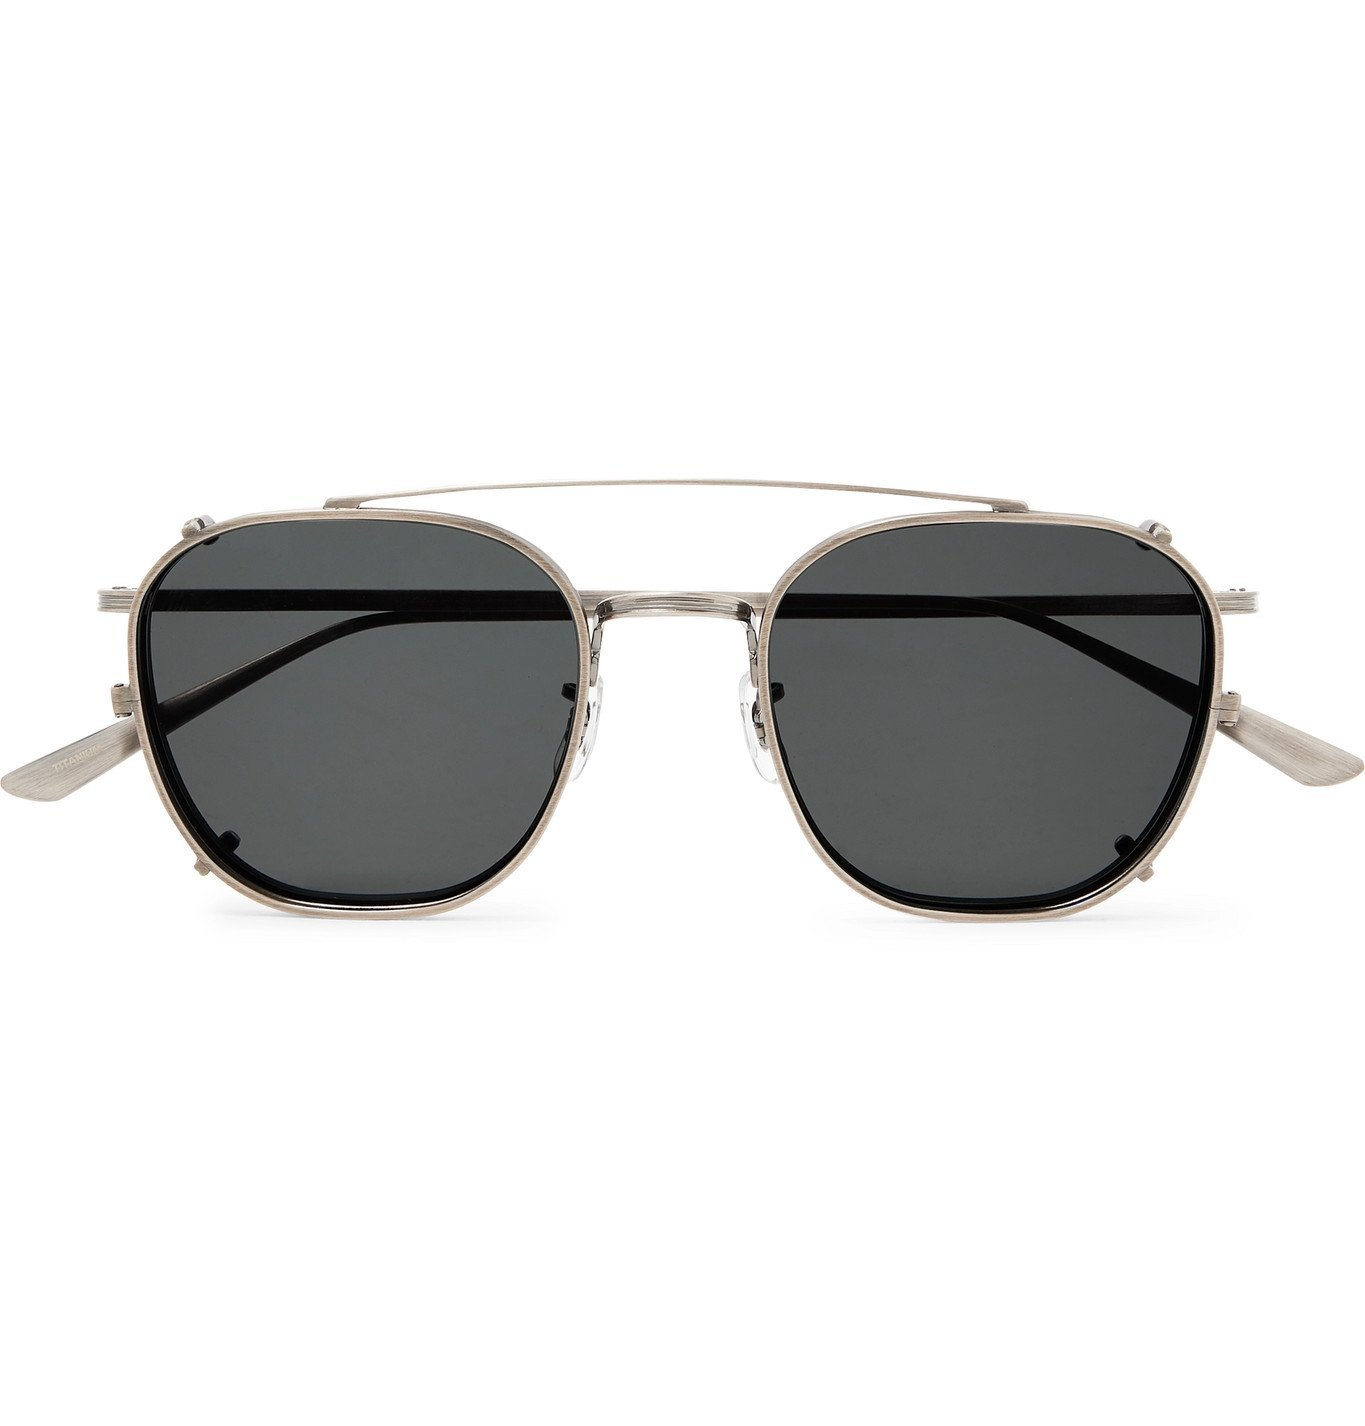 The Row - Oliver Peoples Board Meeting 2 Aviator-Style Silver-Tone Optical Glasses with Clip-On UV Lenses - Silver